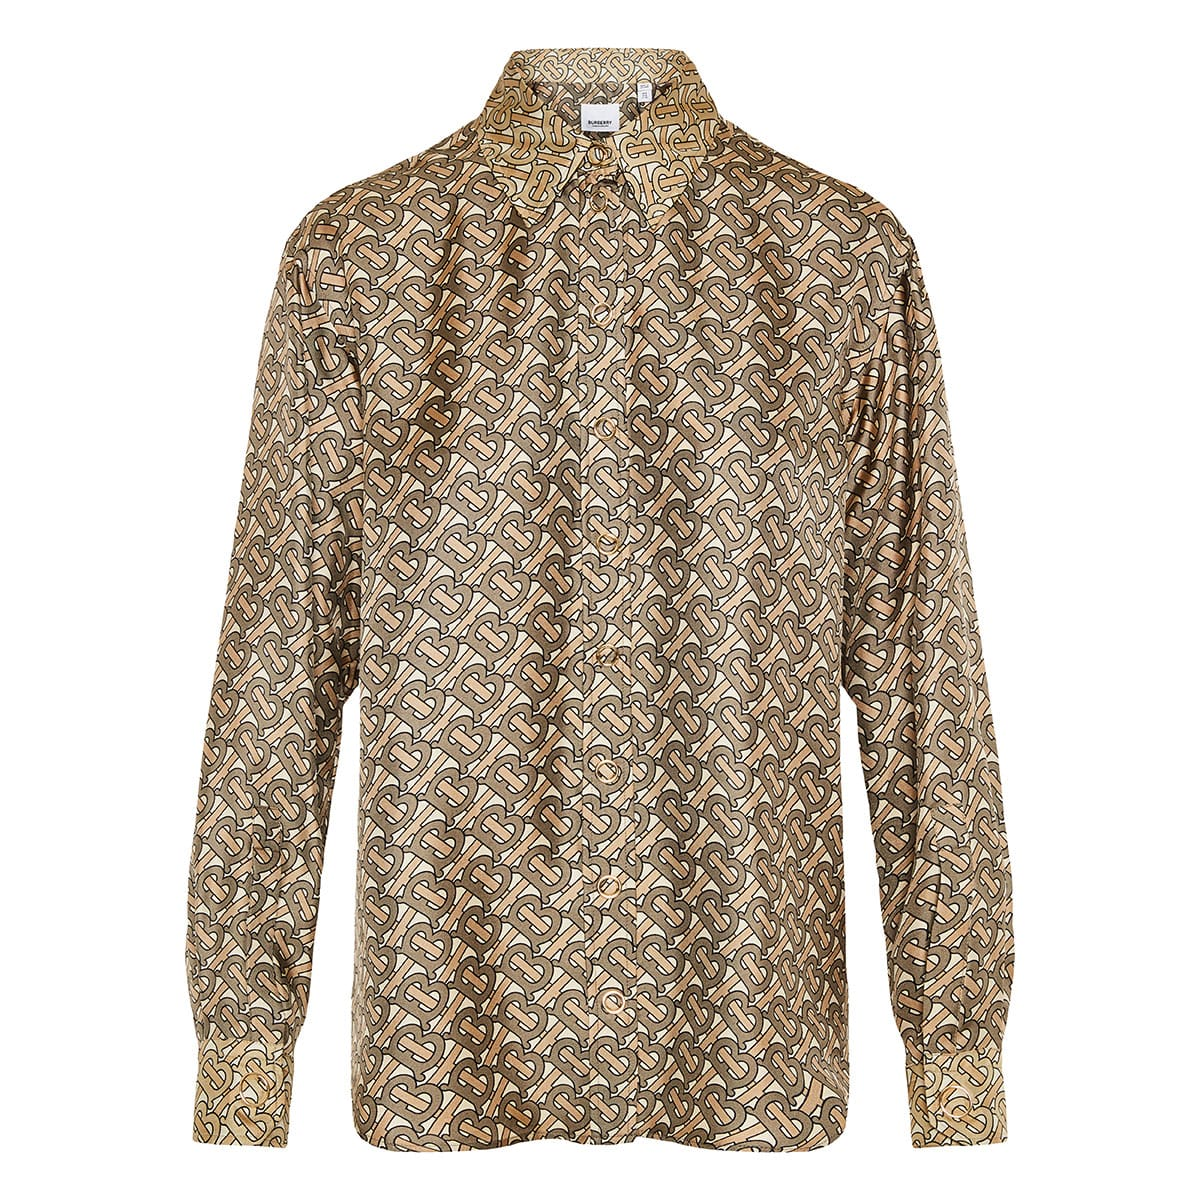 TB printed silk shirt